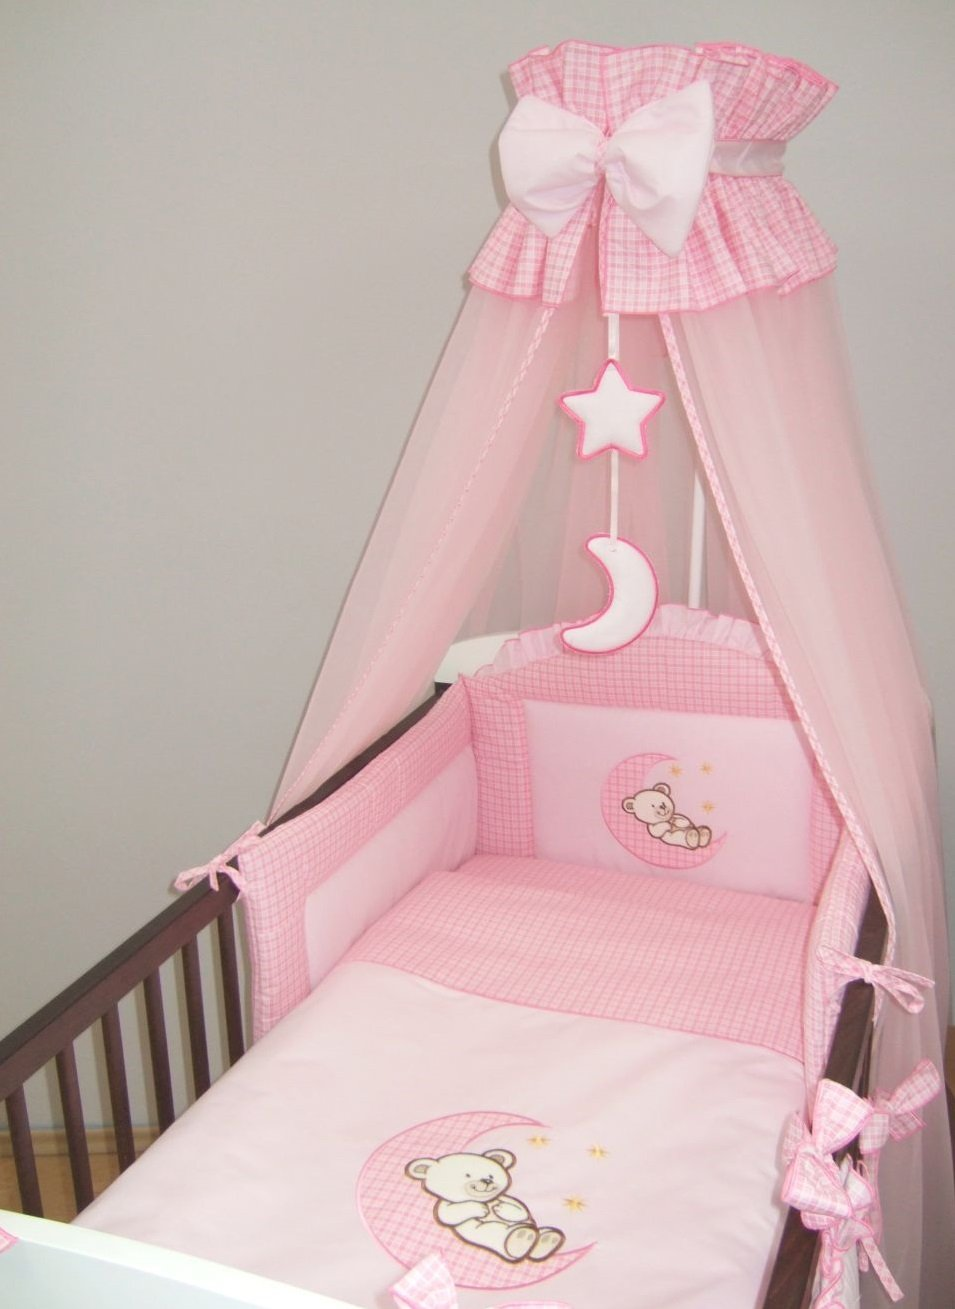 3 Piece Baby Bedding Set (To Fit Cot or Cot Bed) Embroidered - MOON (COT BED 140 x 70cm, Pink) Babycomfort